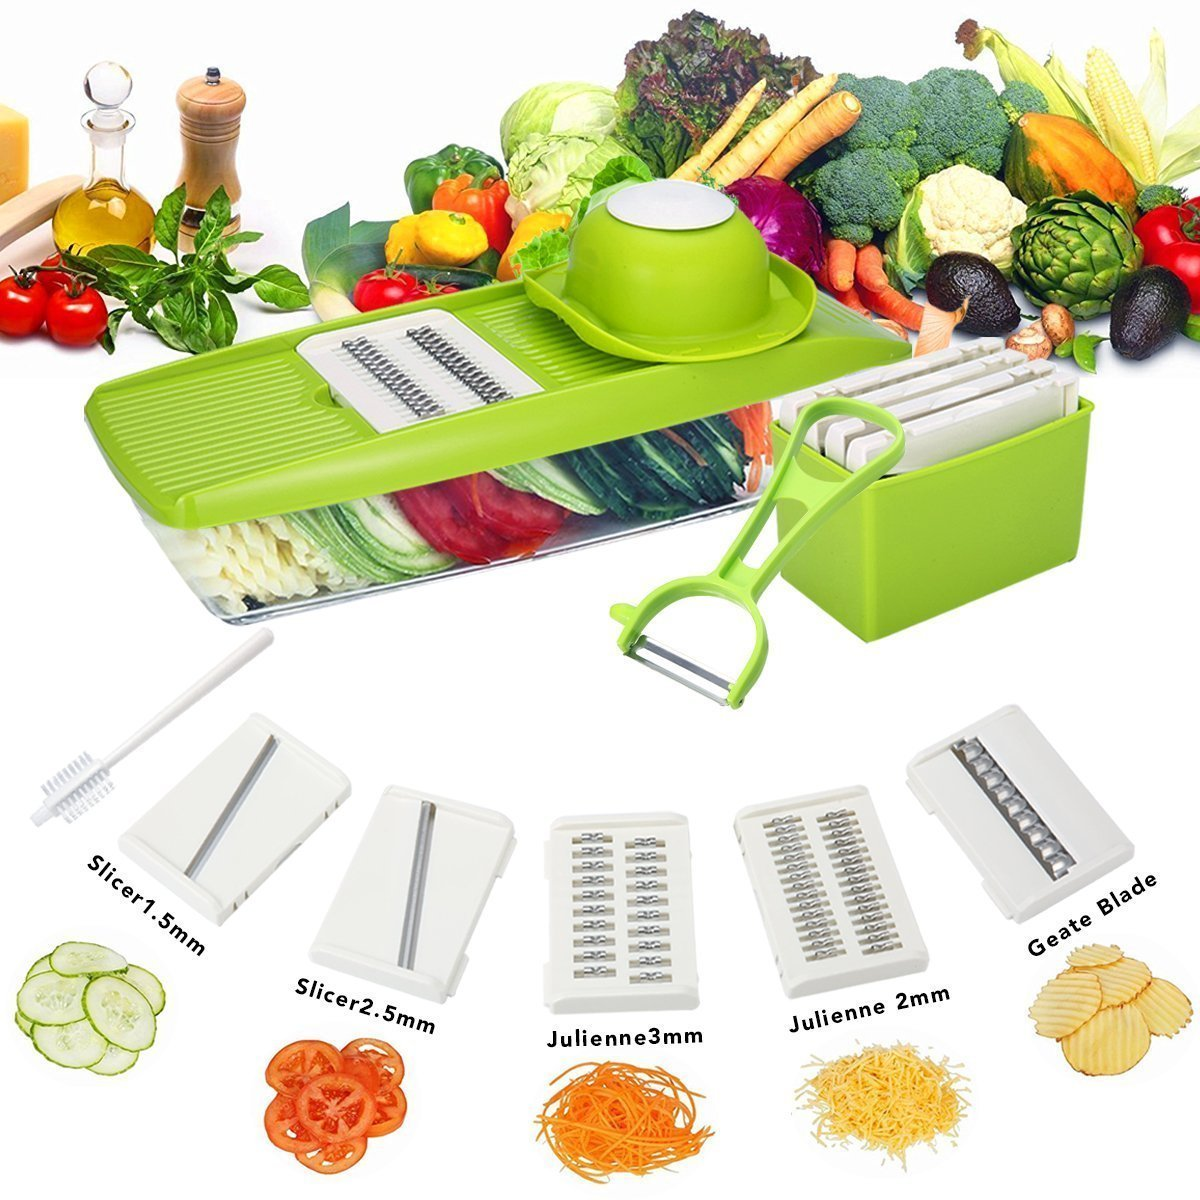 Mandoline Slicer 5 in 1 Vegetable Slicer Grater with 5 Interchangeable Stainless Steel Blades-One Food Container +One Vegetable Peeler+One Cleaning Brush hongchan